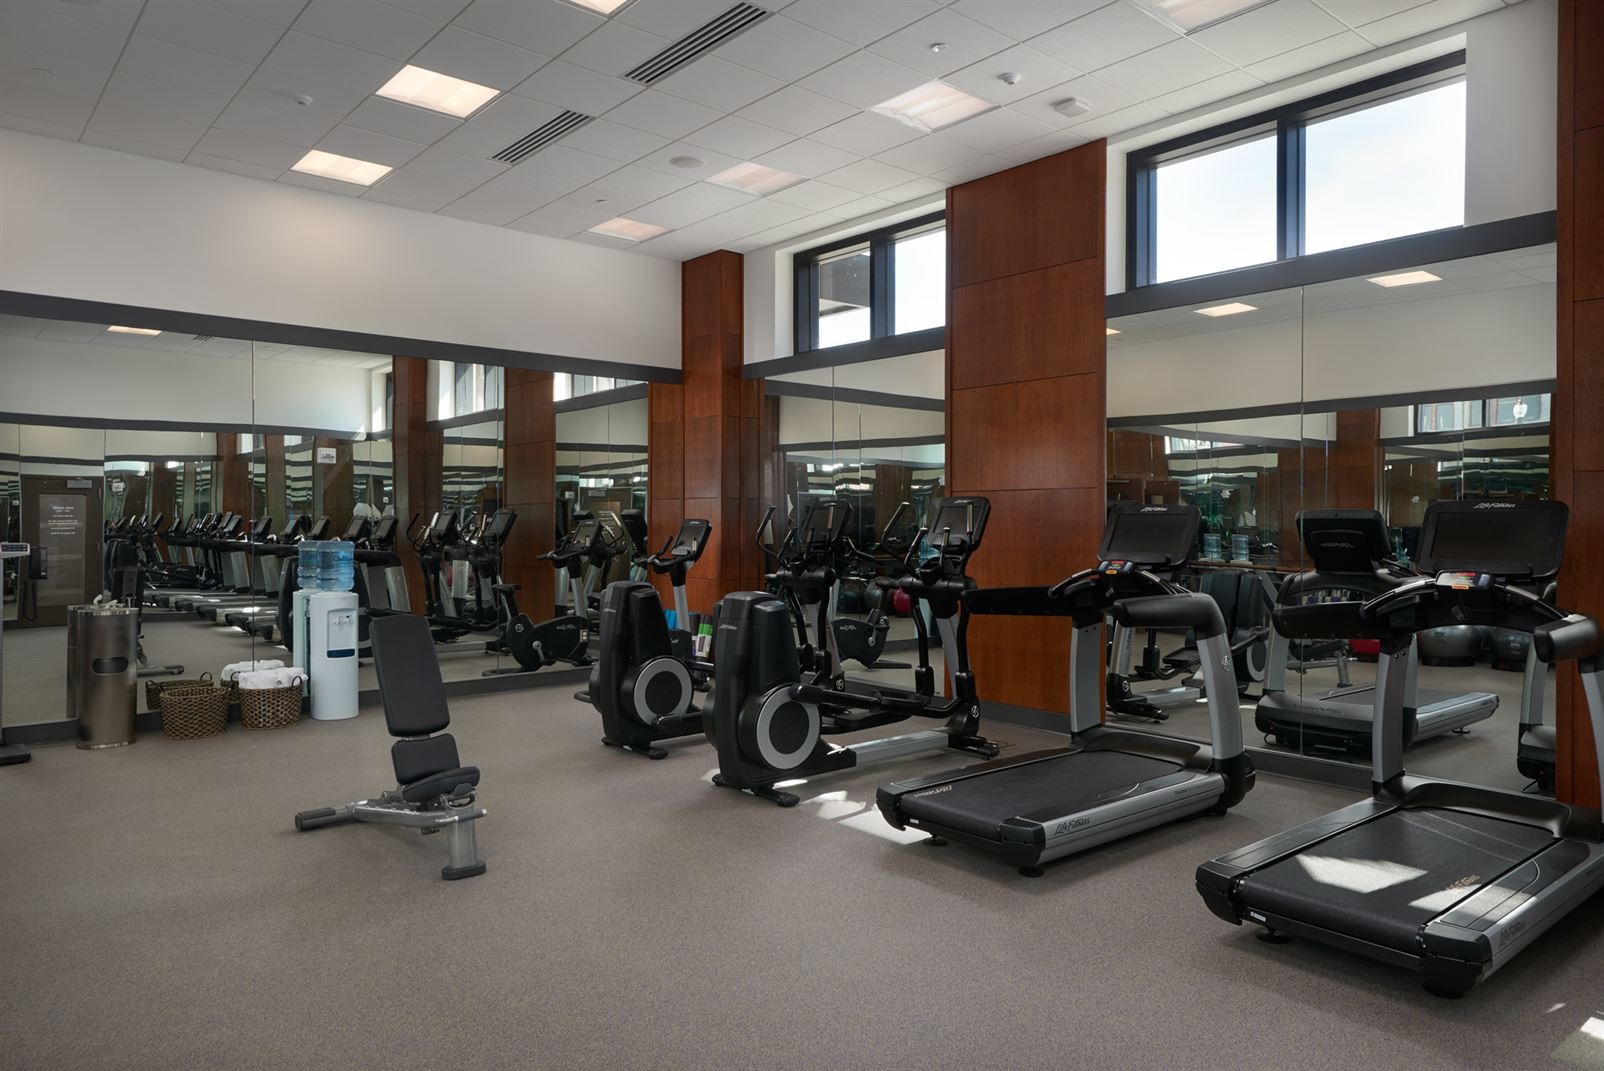 The Merrill Hotel & Conference Center Fitness Center